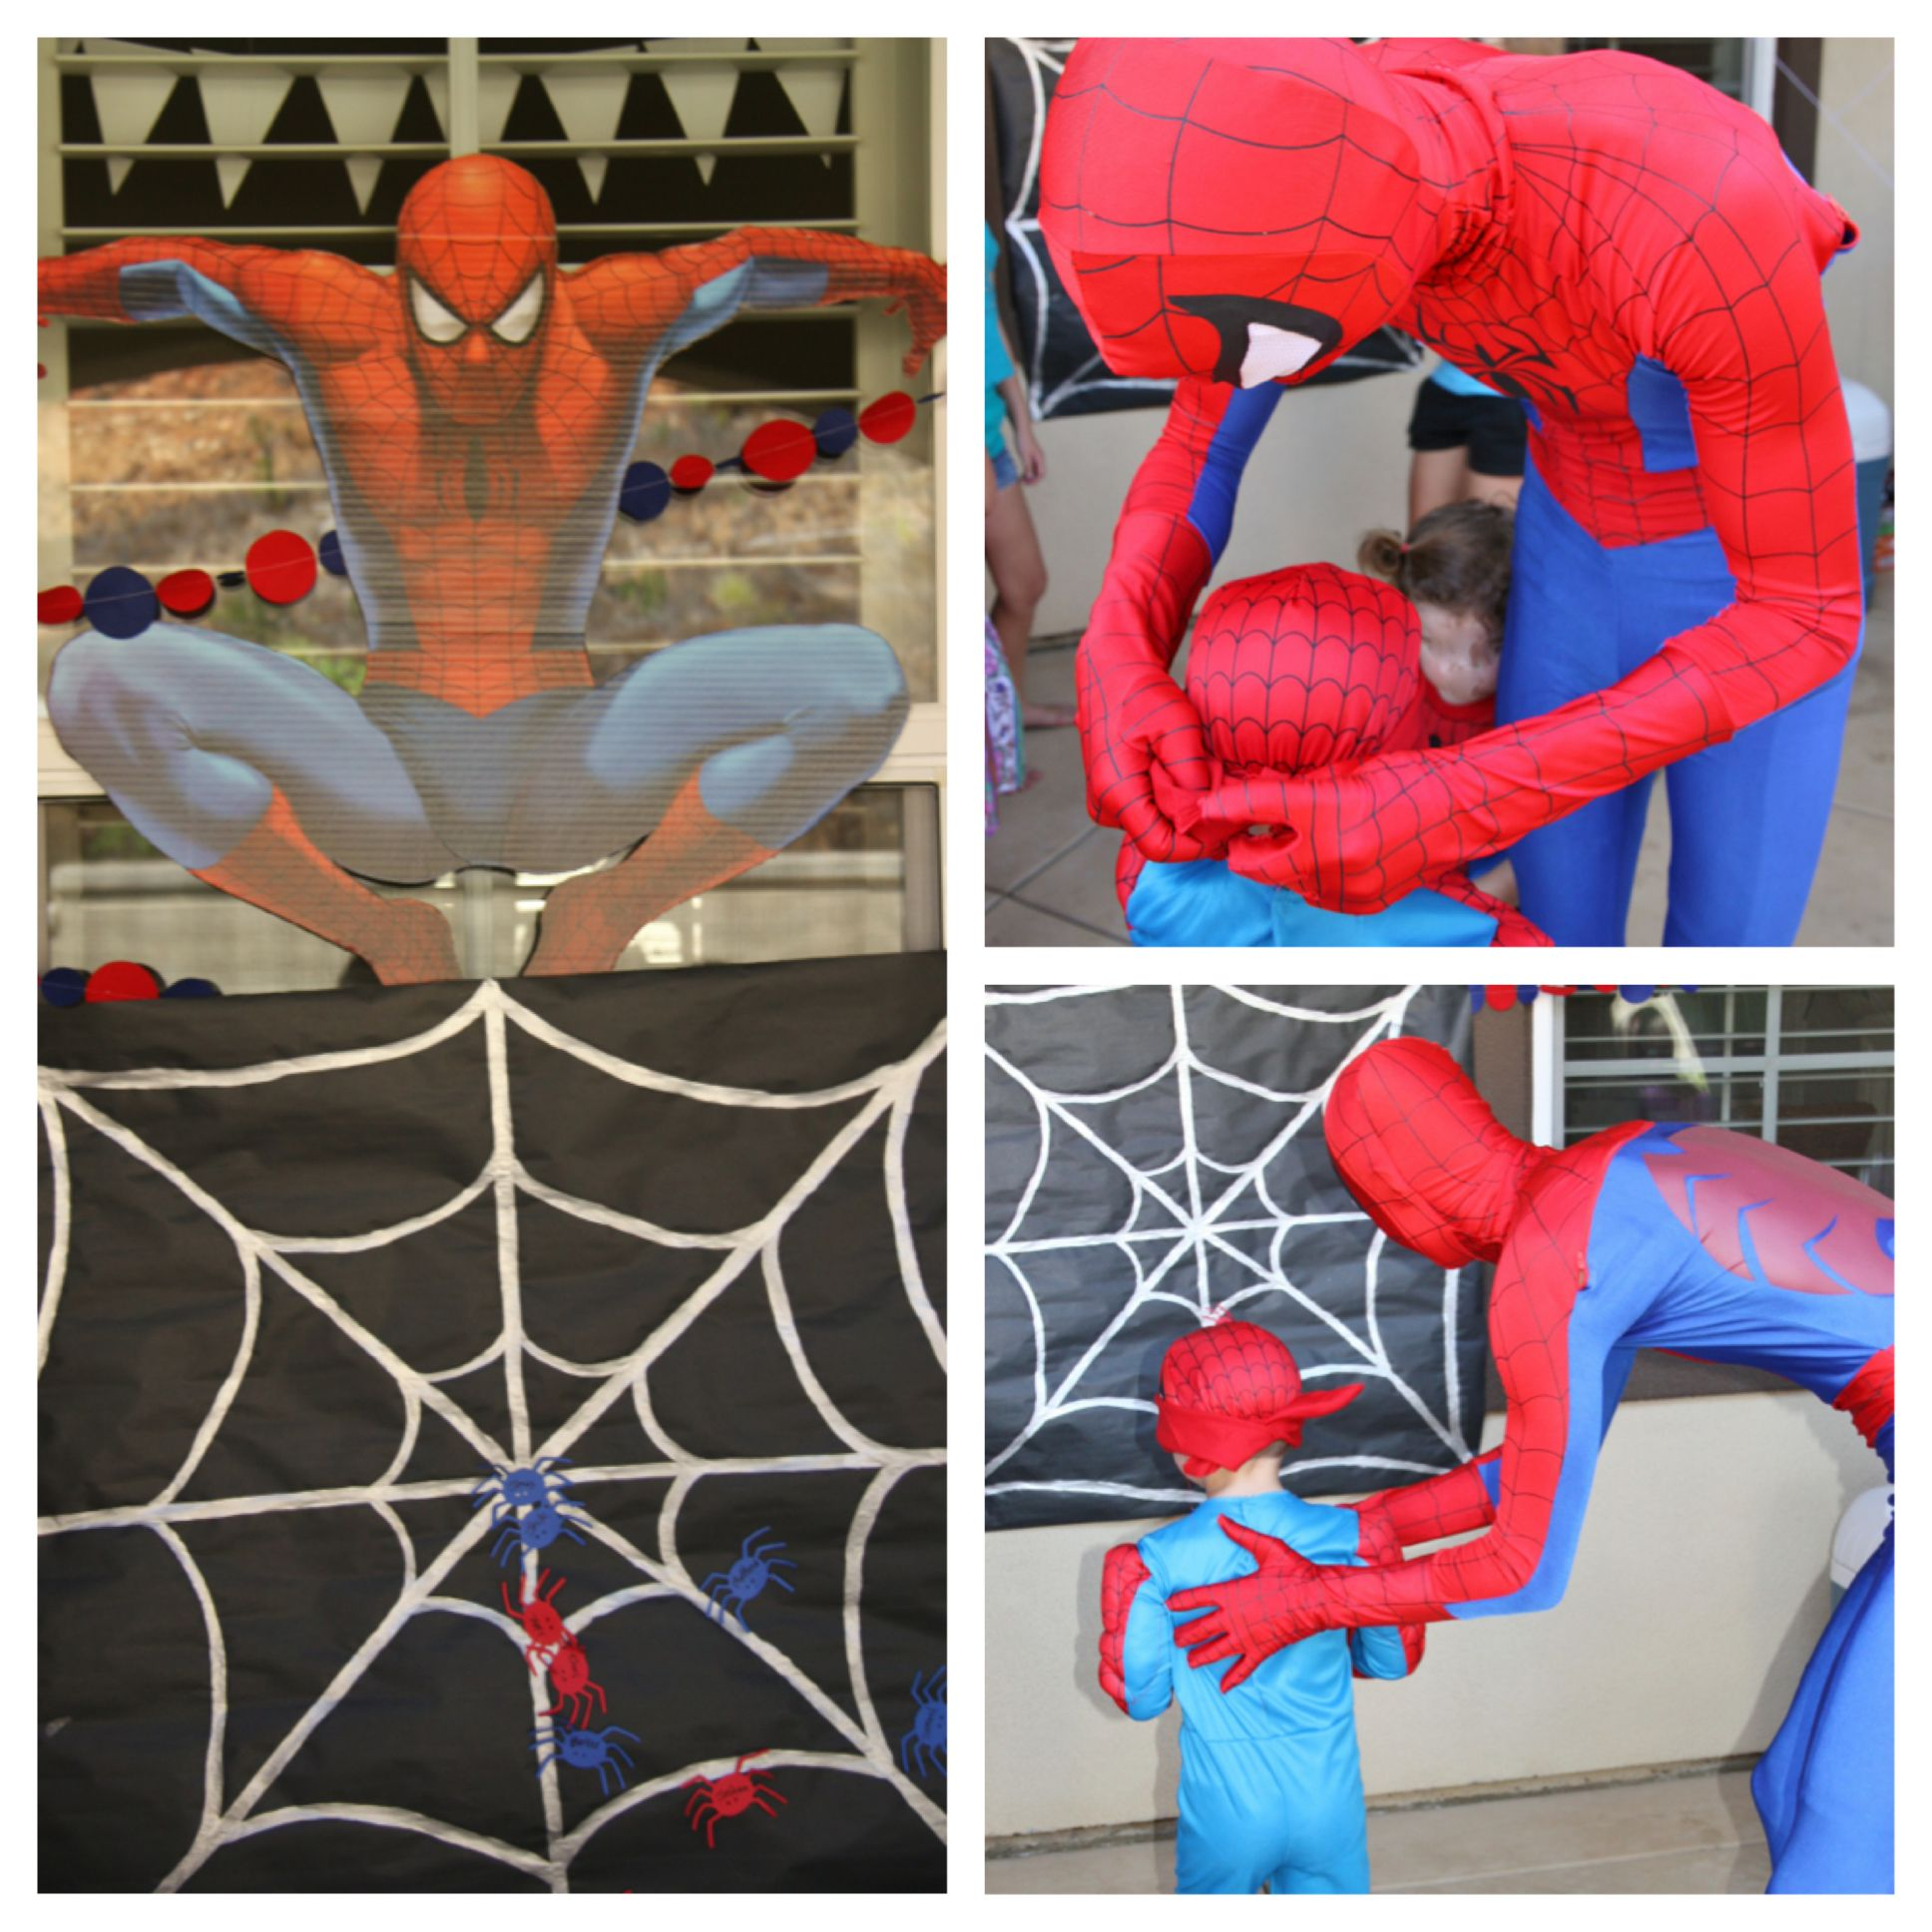 Awesome Spider-Man Party Ideas. Pin The Spider On The Web